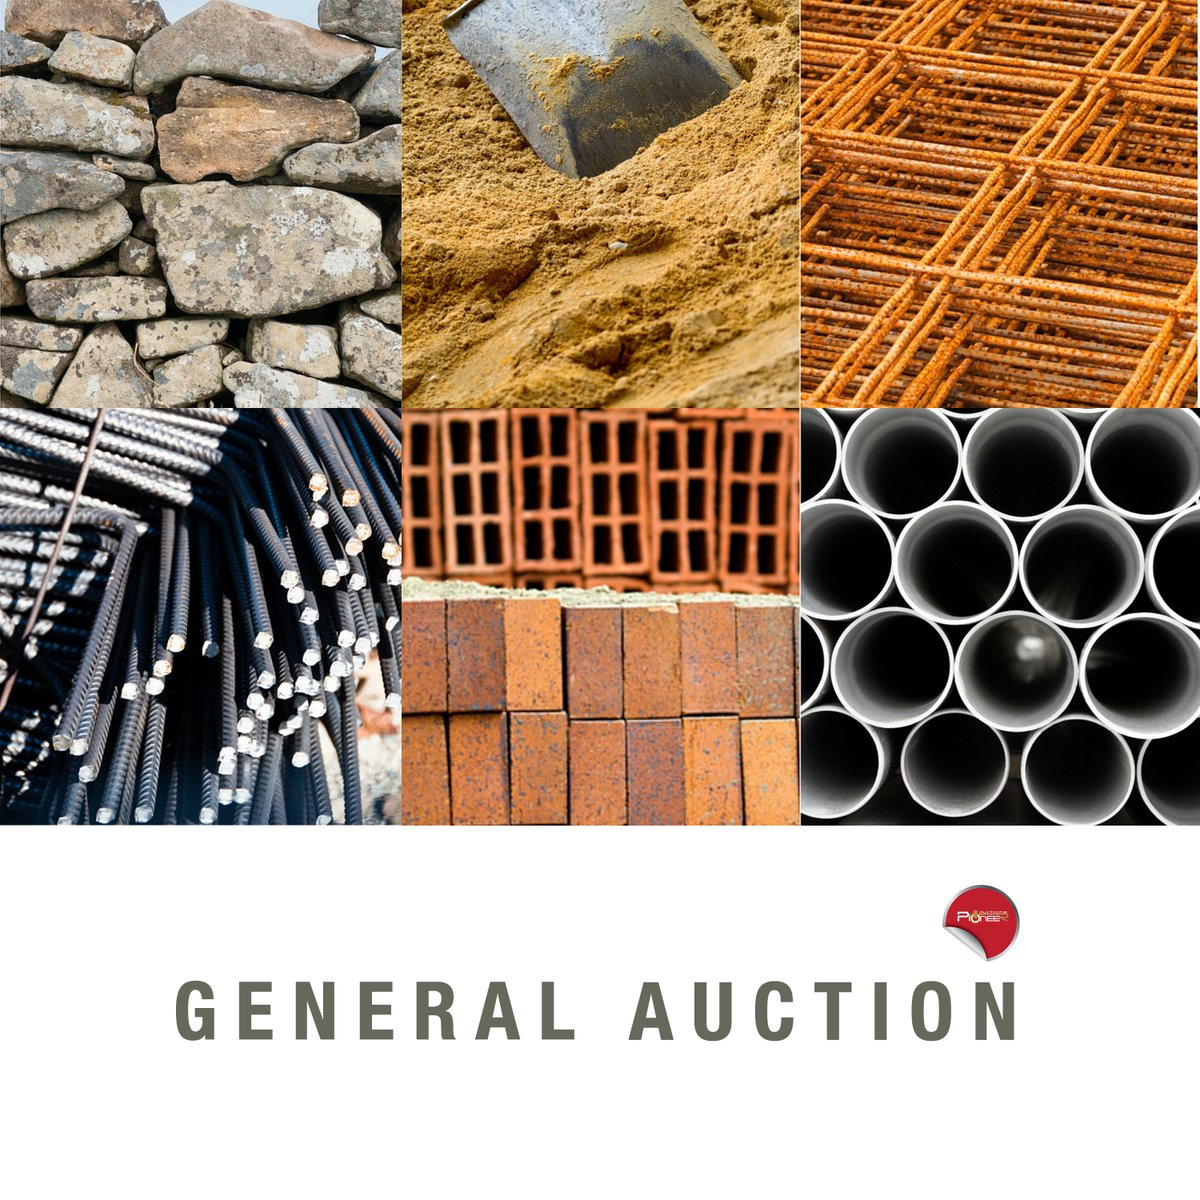 Join our General Auction dedicated for Construction Sector that will have all kind of building materials on SALE! https://t.co/Zz8lJqJYGF